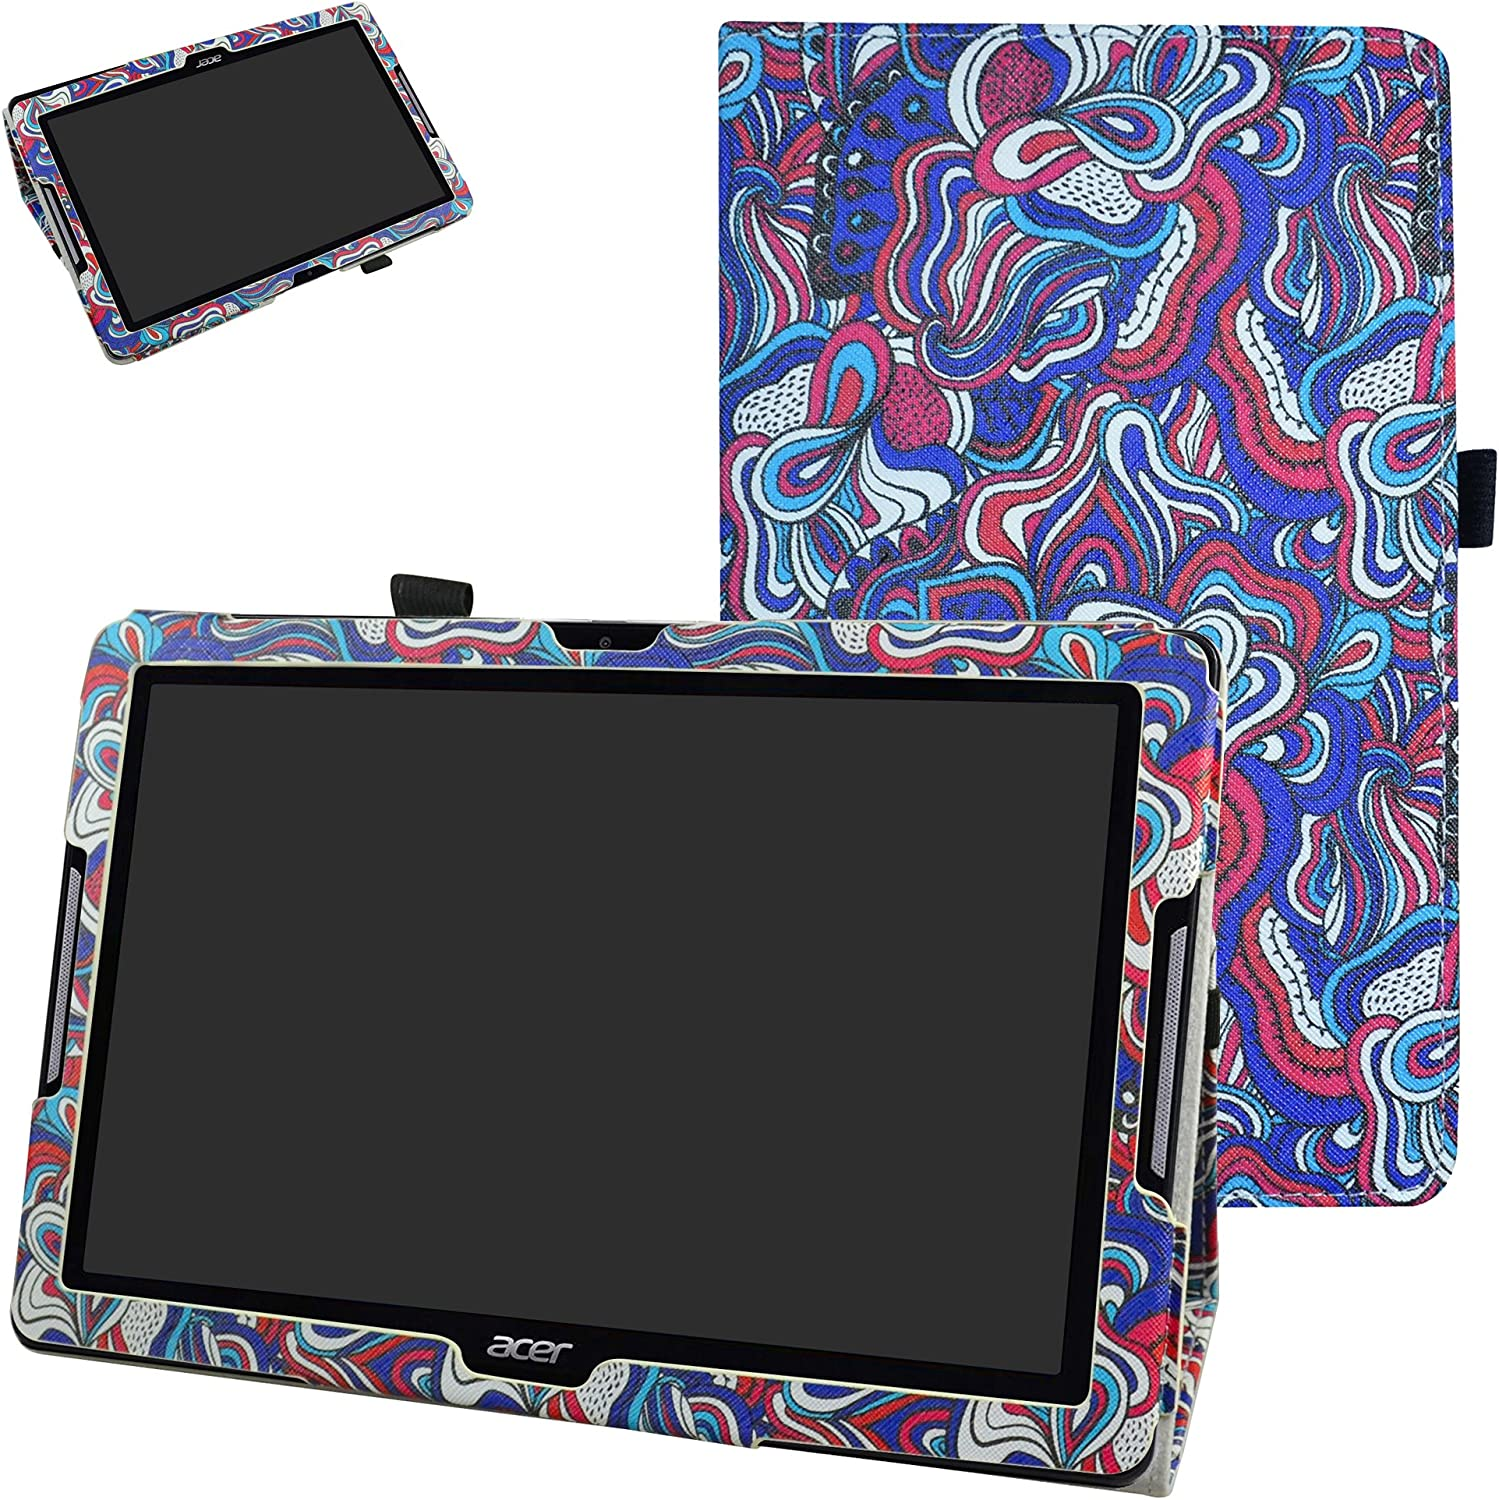 "Acer Iconia One 10 B3-A30 Case,Mama Mouth PU Leather Folio 2-Folding Stand Cover with Stylus Holder for 10.1"" Acer Iconia One 10 B3-A30 Android Tablet, Mushroom Fantasy"